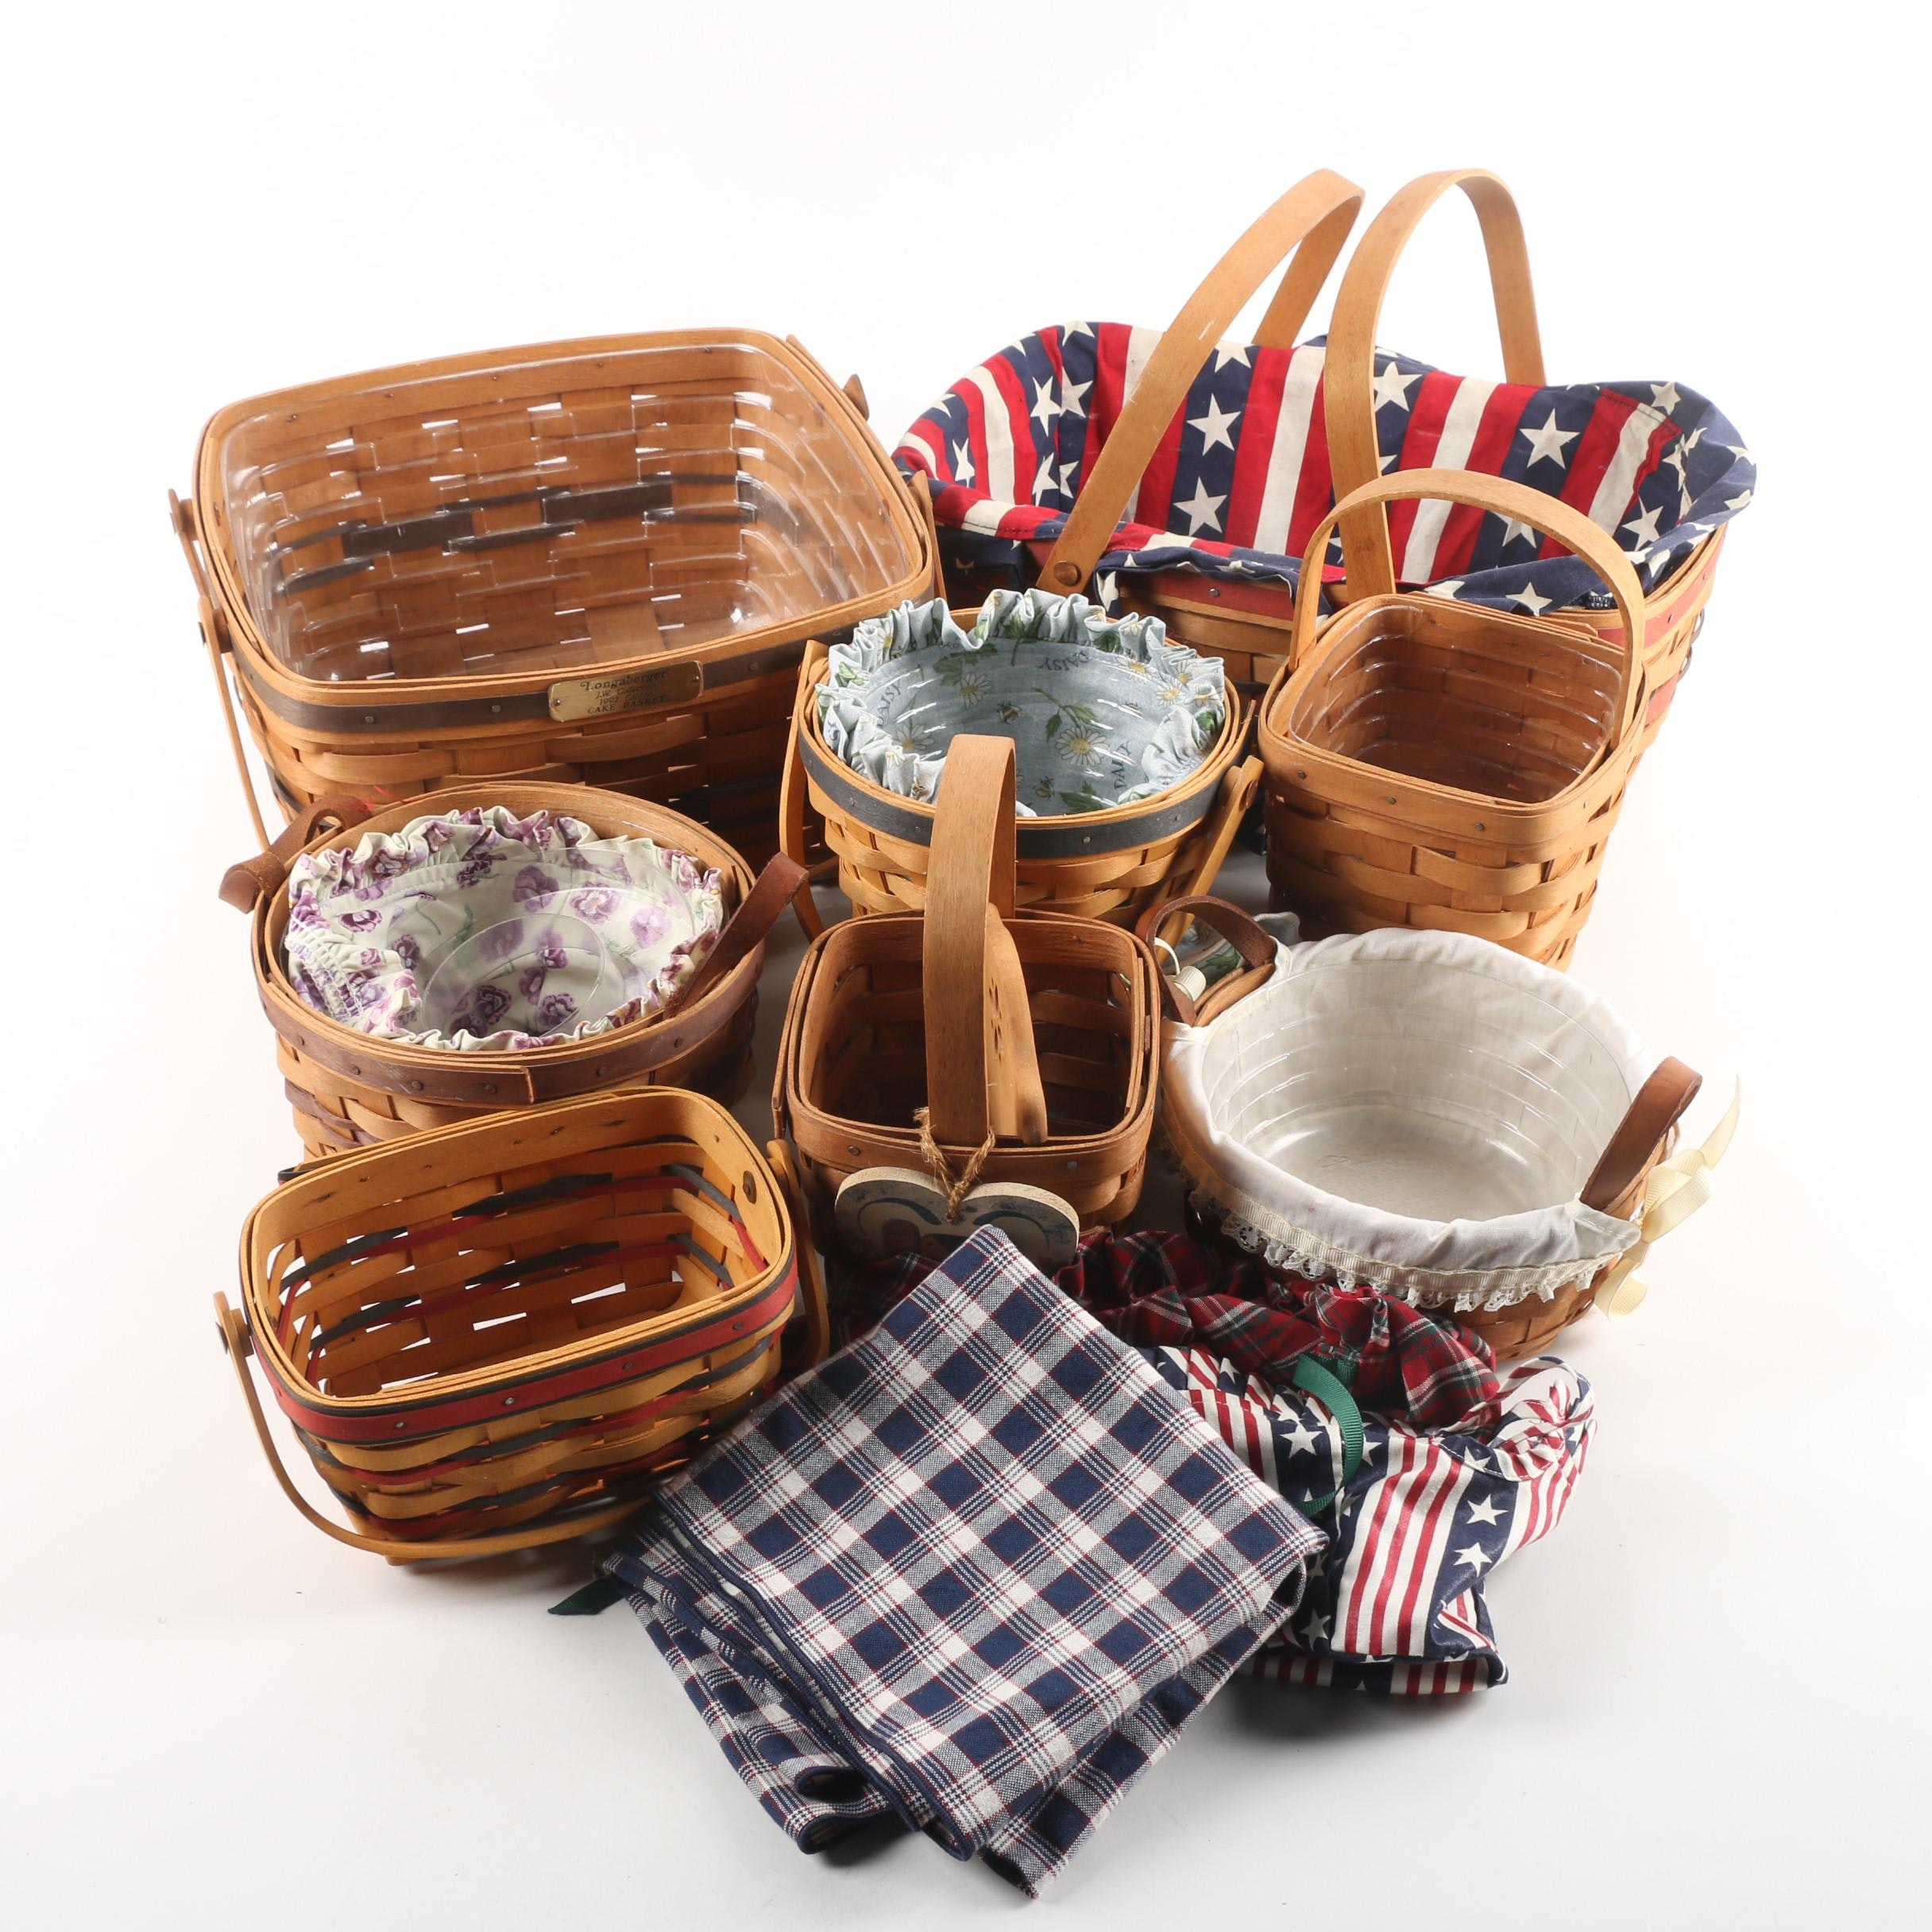 Longaberger Baskets Including the J.W. Collection 1992 Cake Basket